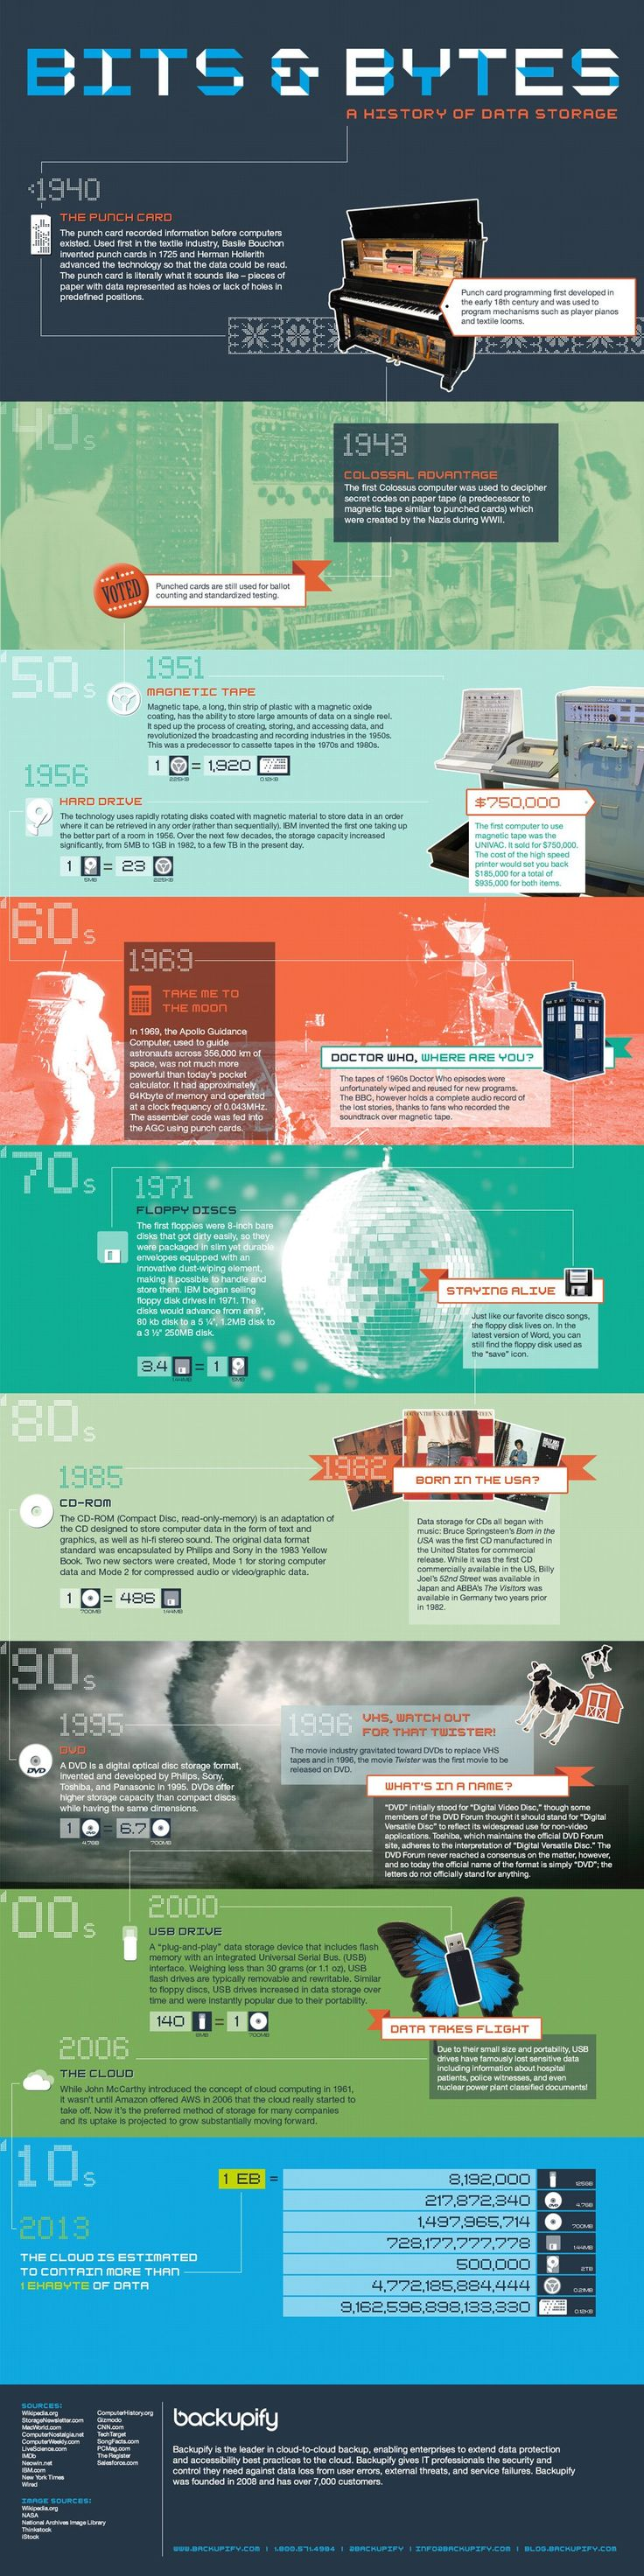 Check out this infographic to see how far we've come in terms of data storage since 1940.